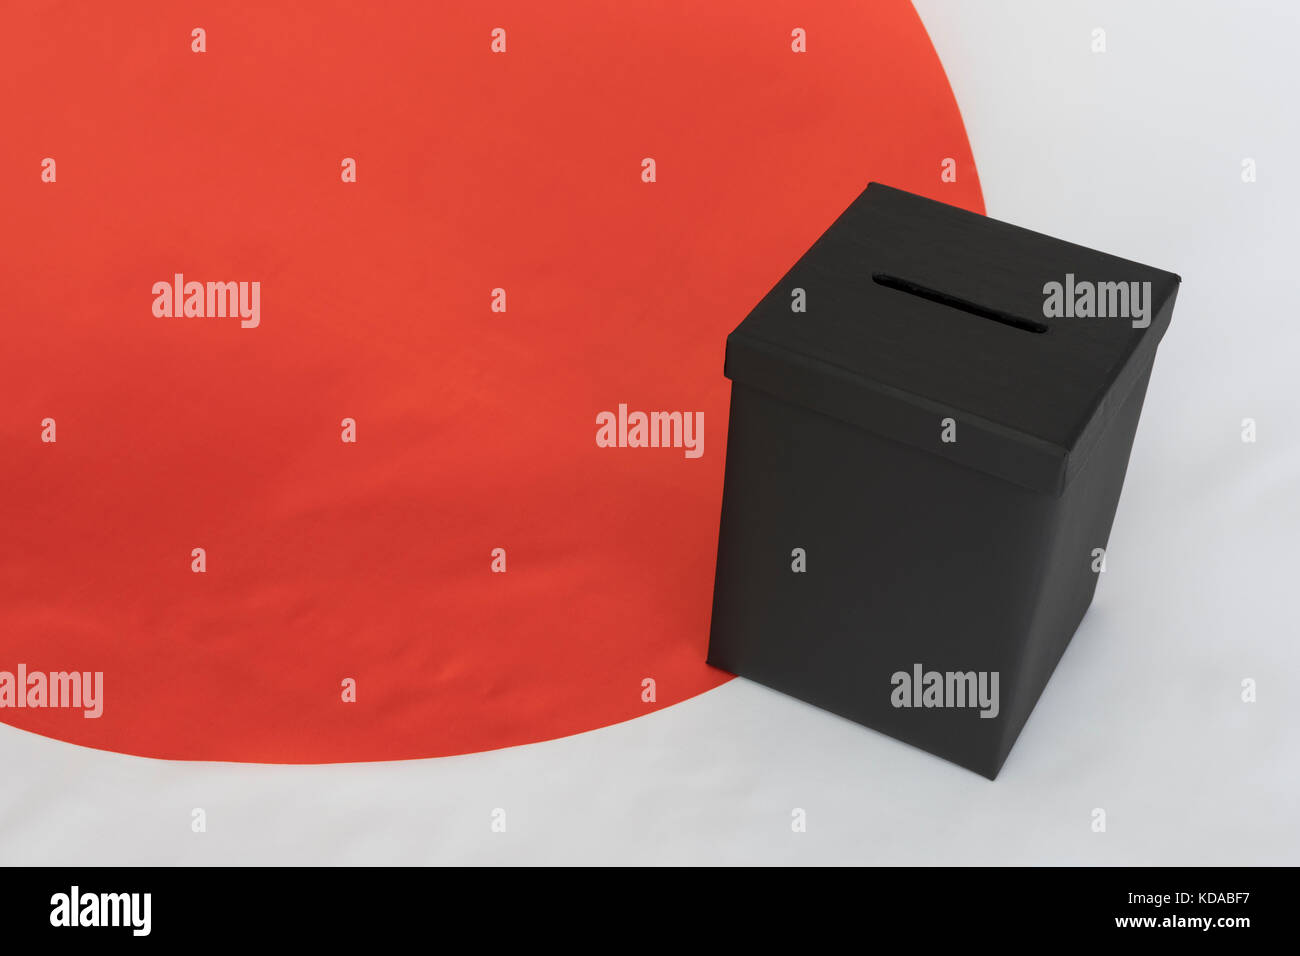 Japanese 'Circle of the Sun' / 'Rising Sun' flag with black ballot box - as metaphor for Japanese General Election. Stock Photo